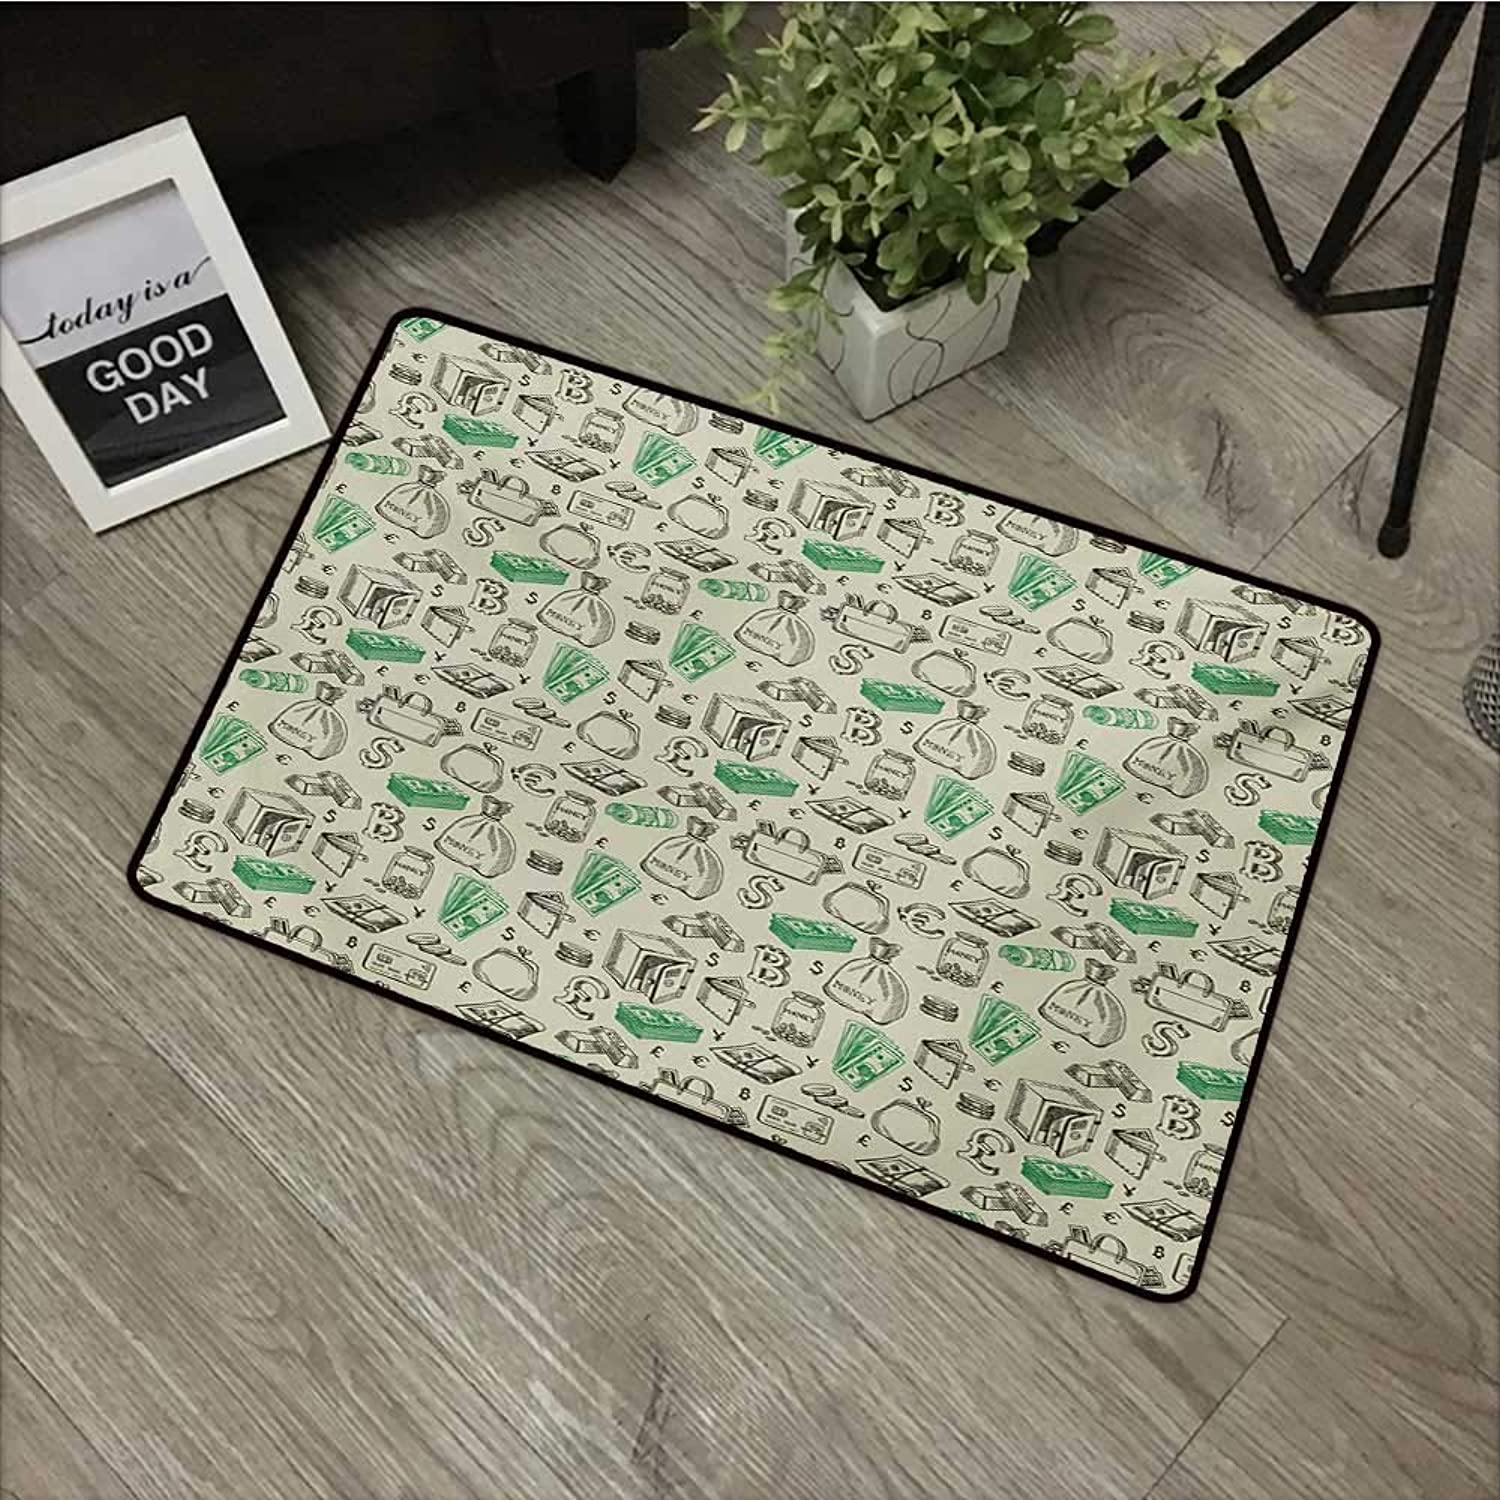 Corridor Door mat W35 x L59 INCH Money,Symbols of Monetary Systems Dollar Crypto Currency Bitcoin Sign Sketch,Pale Green Lime Green with Non-Slip Backing Door Mat Carpet